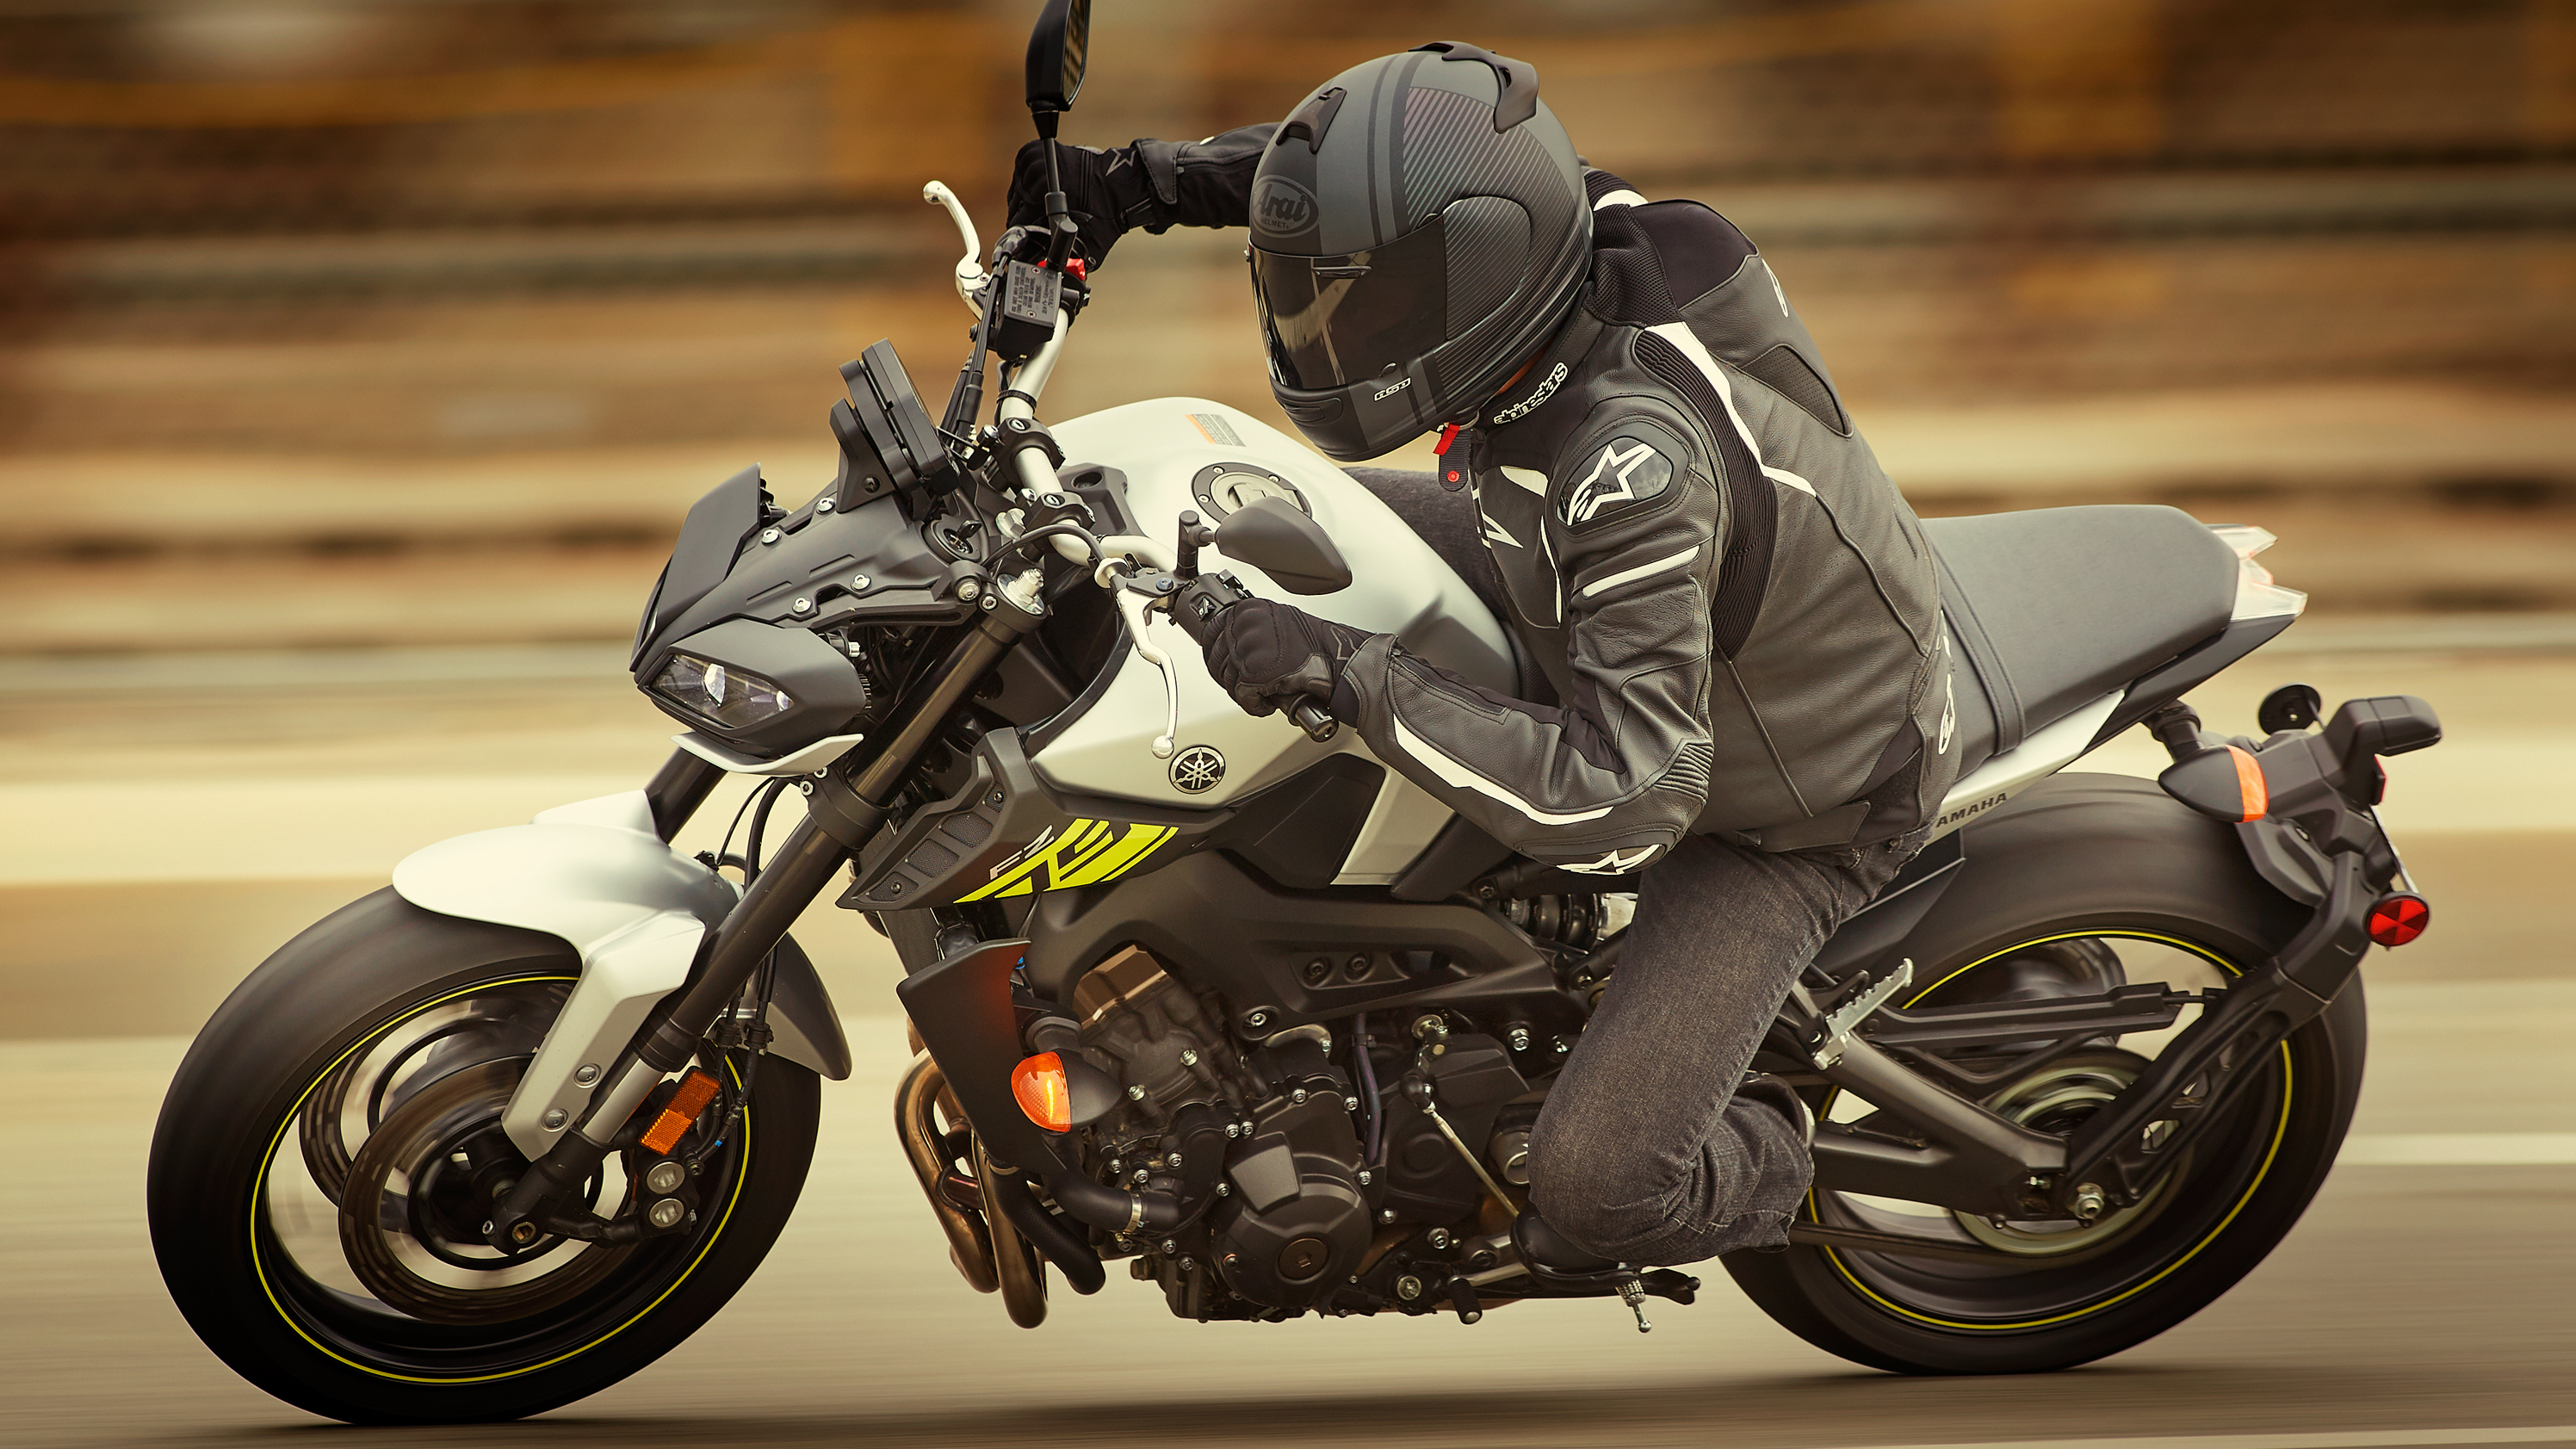 2017 Yamaha Grizzly >> 2017 Yamaha FZ-09 Pictures, Photos, Wallpapers.   Top Speed